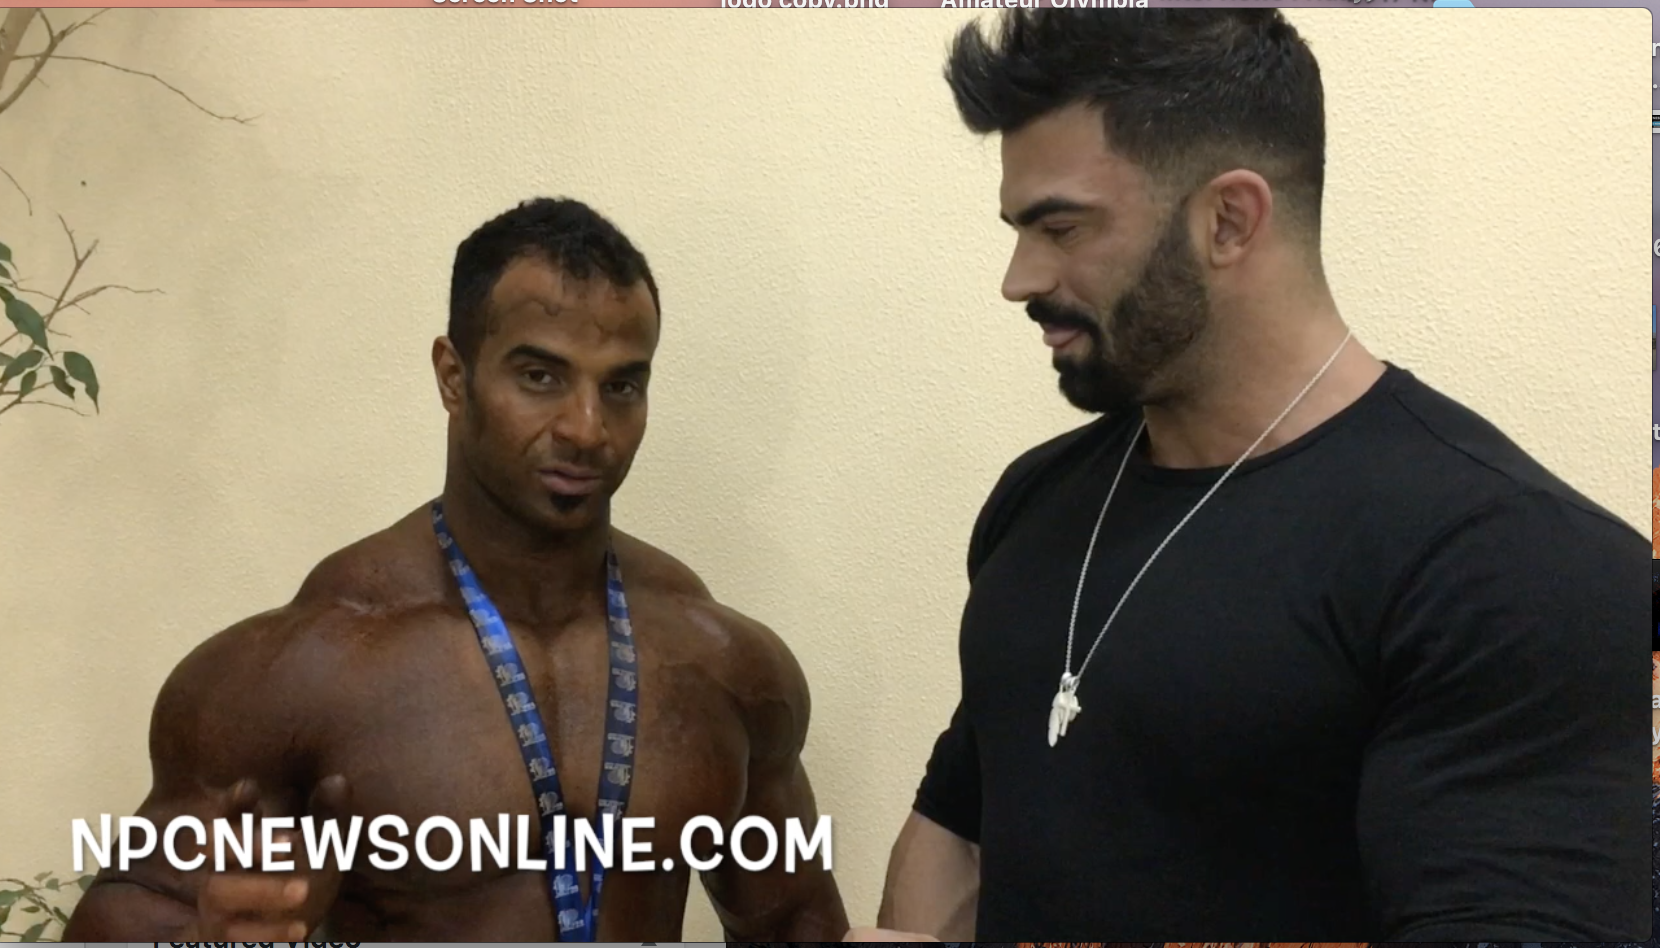 2017 IFBB Kuwait Pro Qualifier Men's 212 Winner Ahmed Talat Elsadany interviewed by Sergi Constance